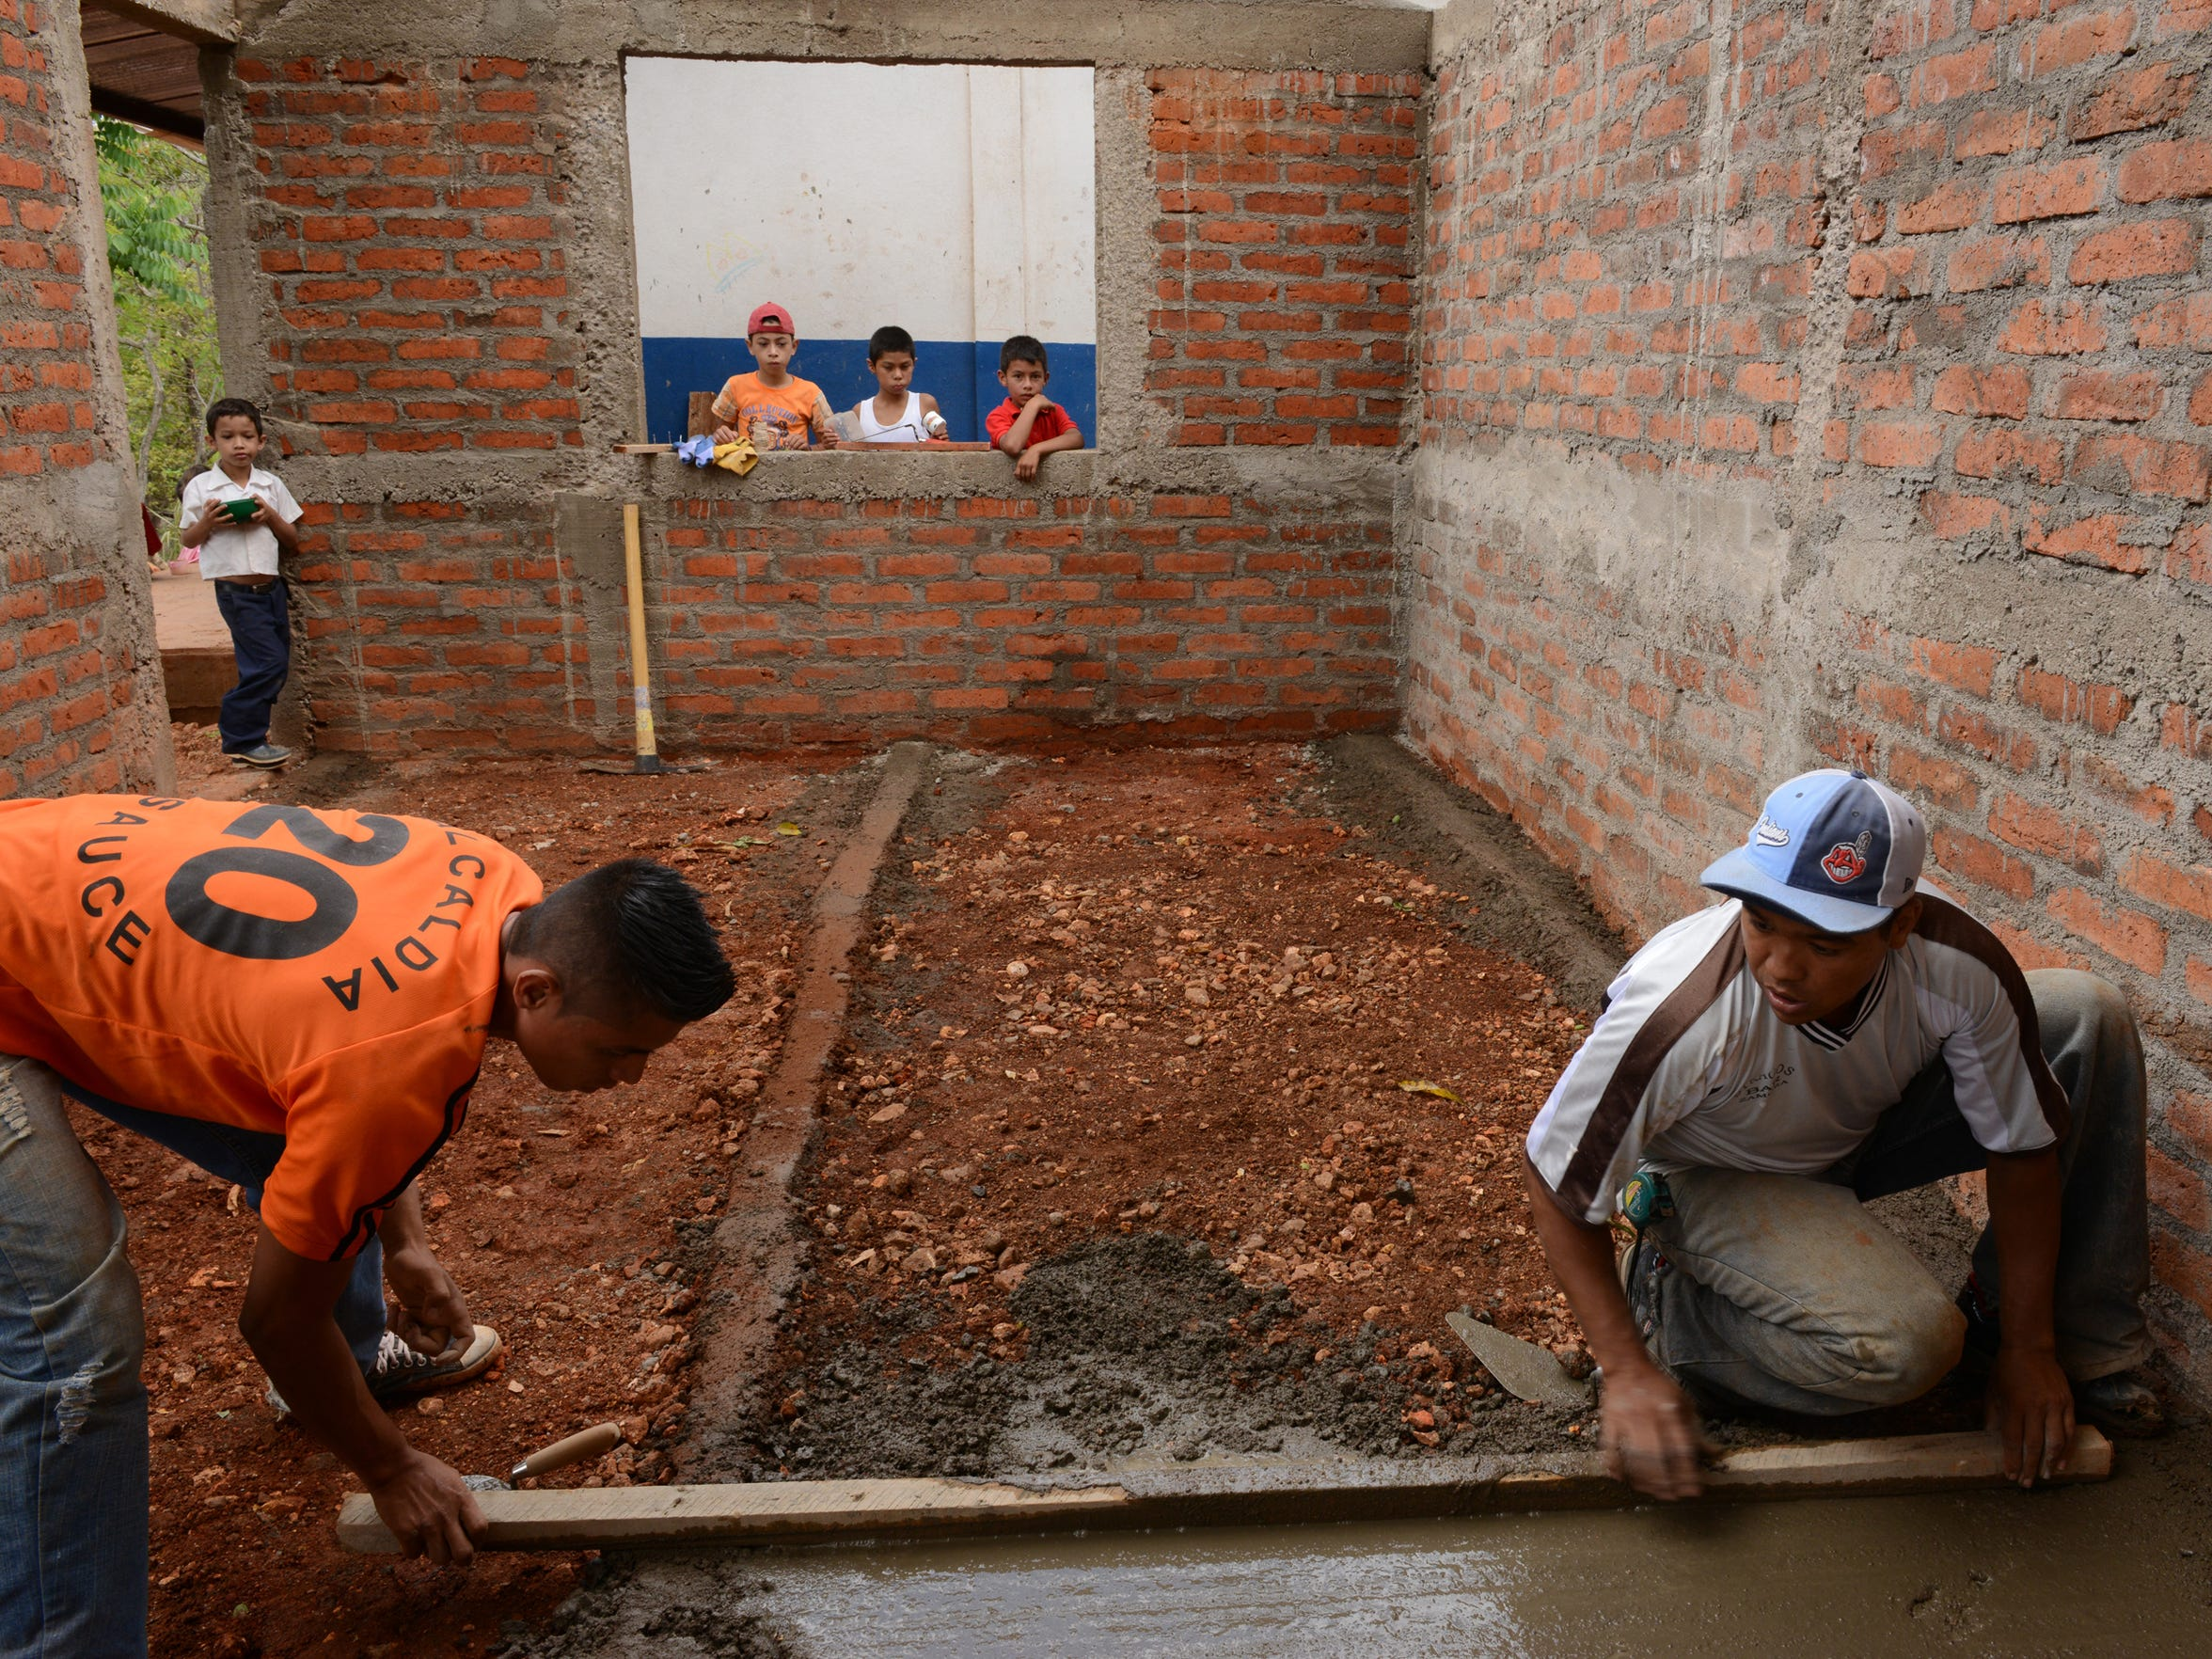 Using handmade bricks and simple tools, the team works on the dream of a permanent schoolhouse.